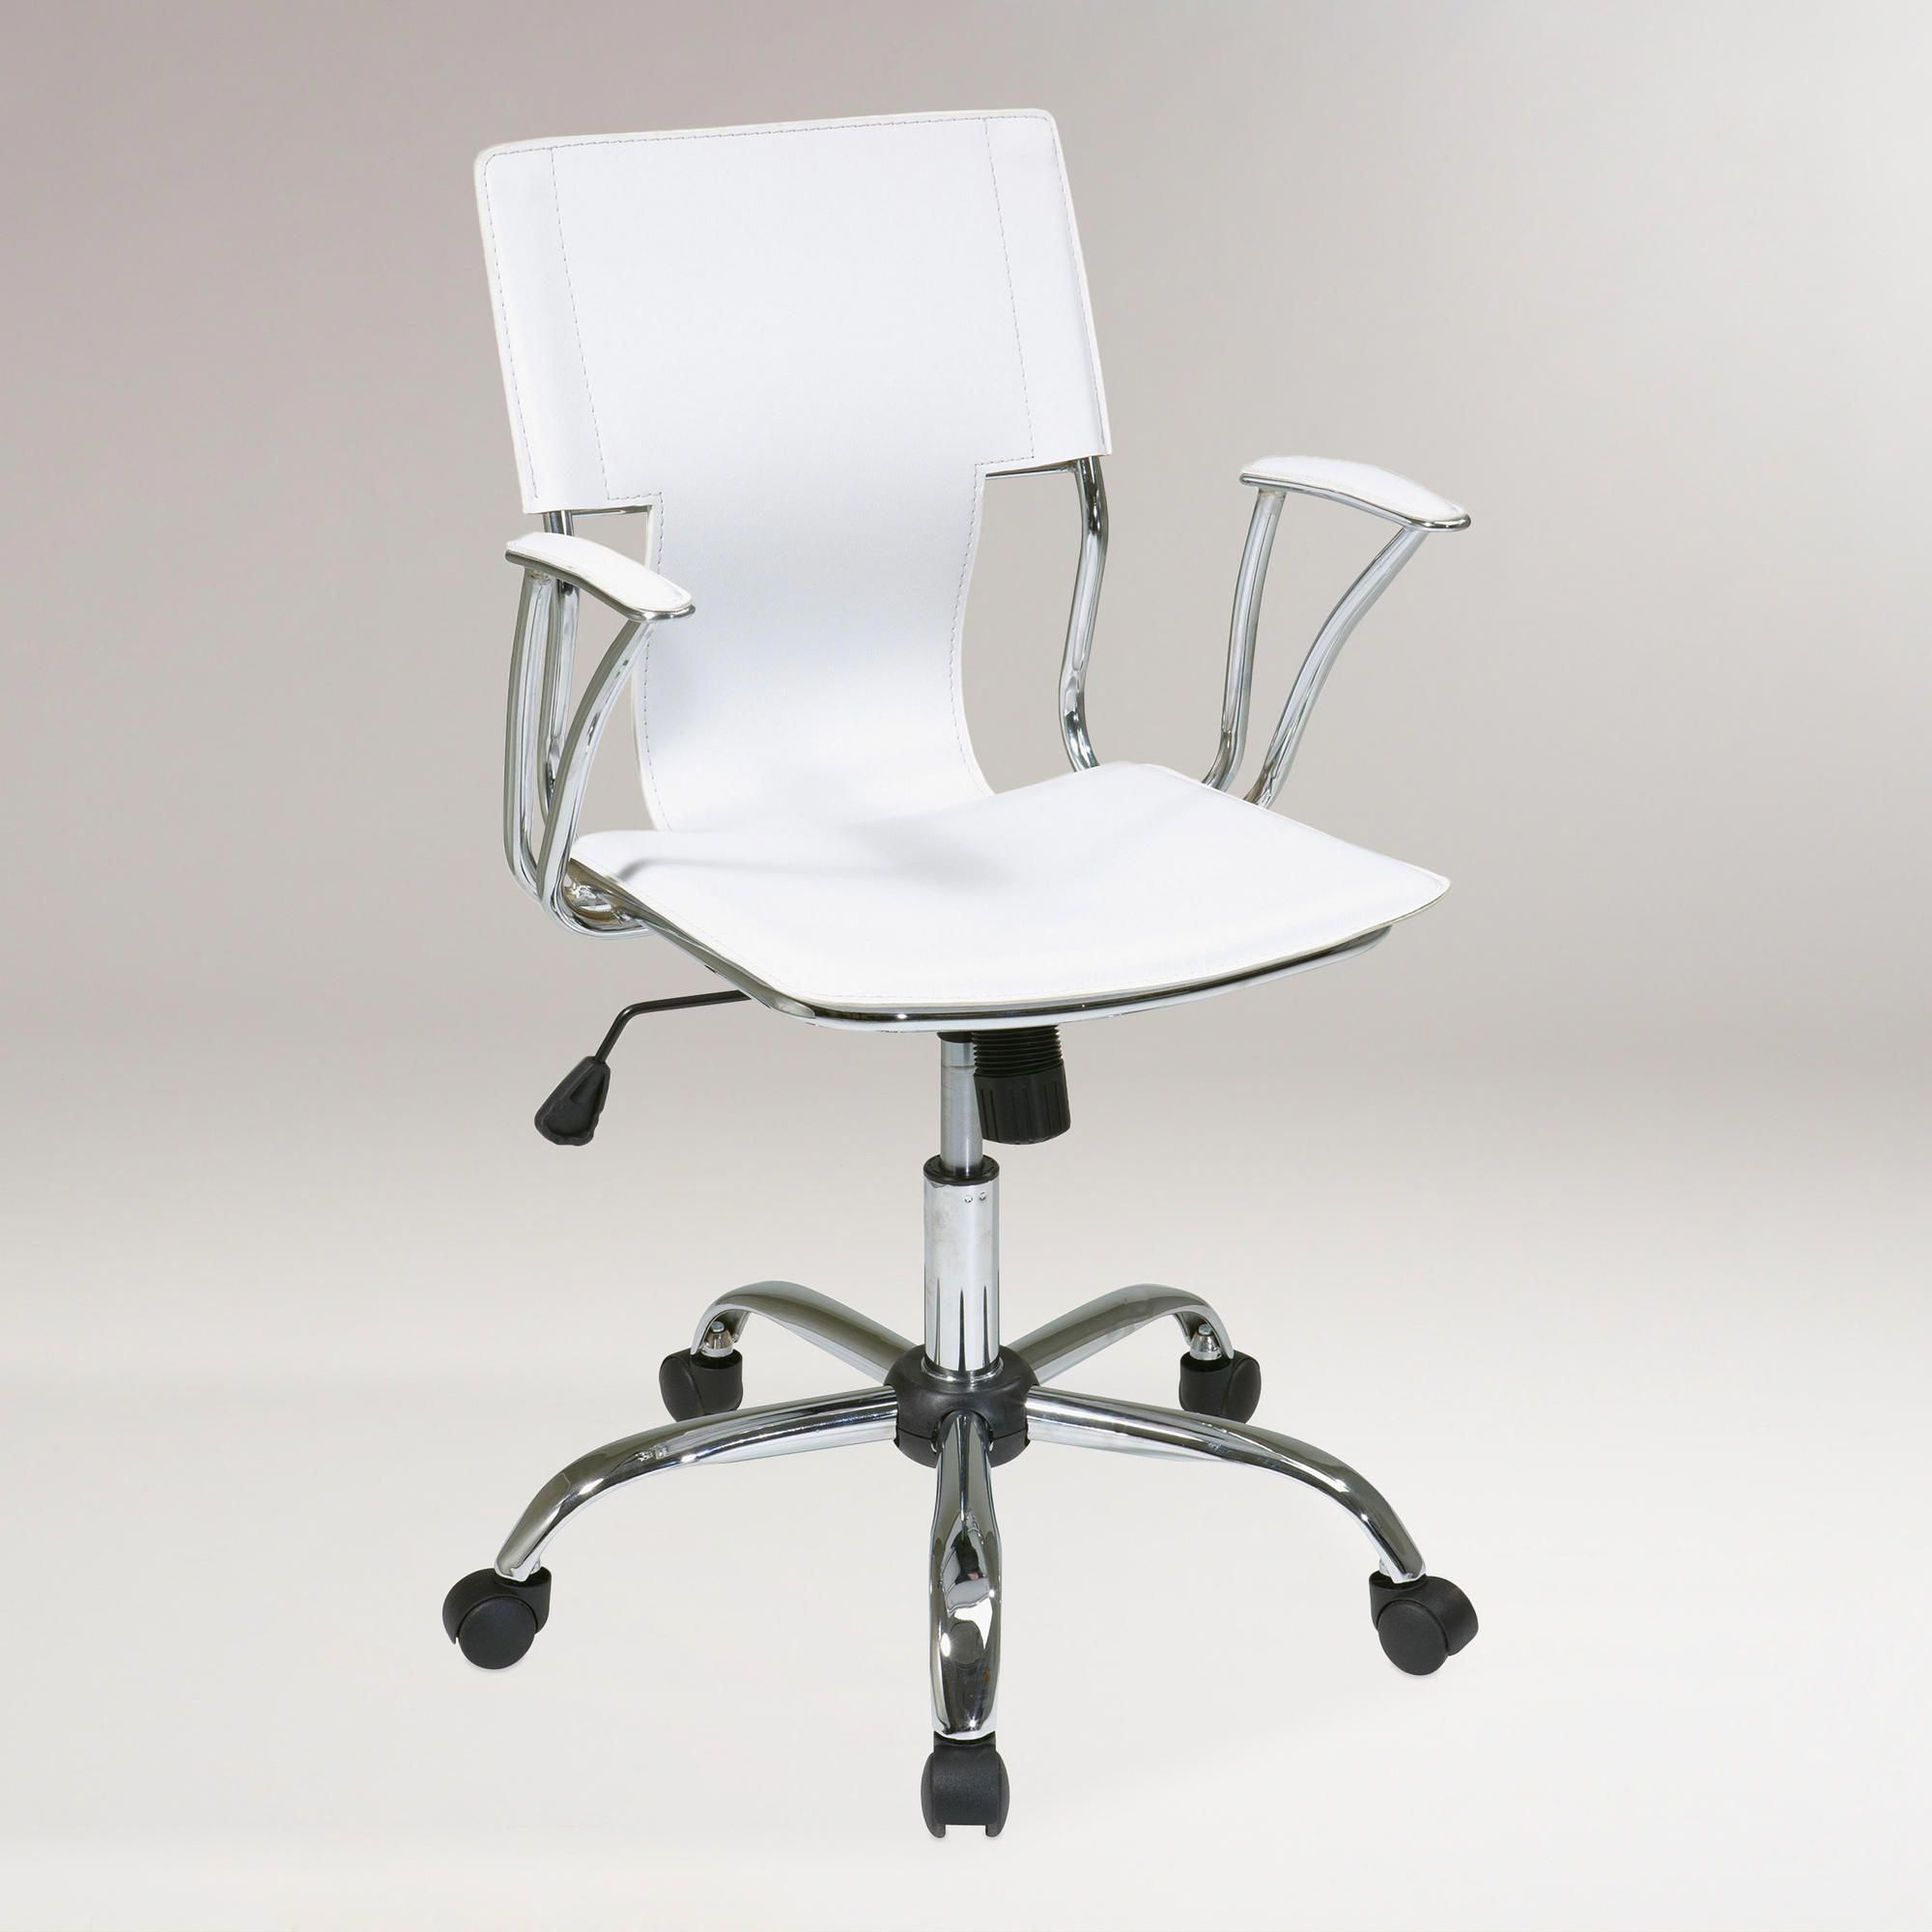 World Market Desk Chair Fisher Price Space Saver High Replacement Straps White Ethan Office Luxuryofficechairs Wing